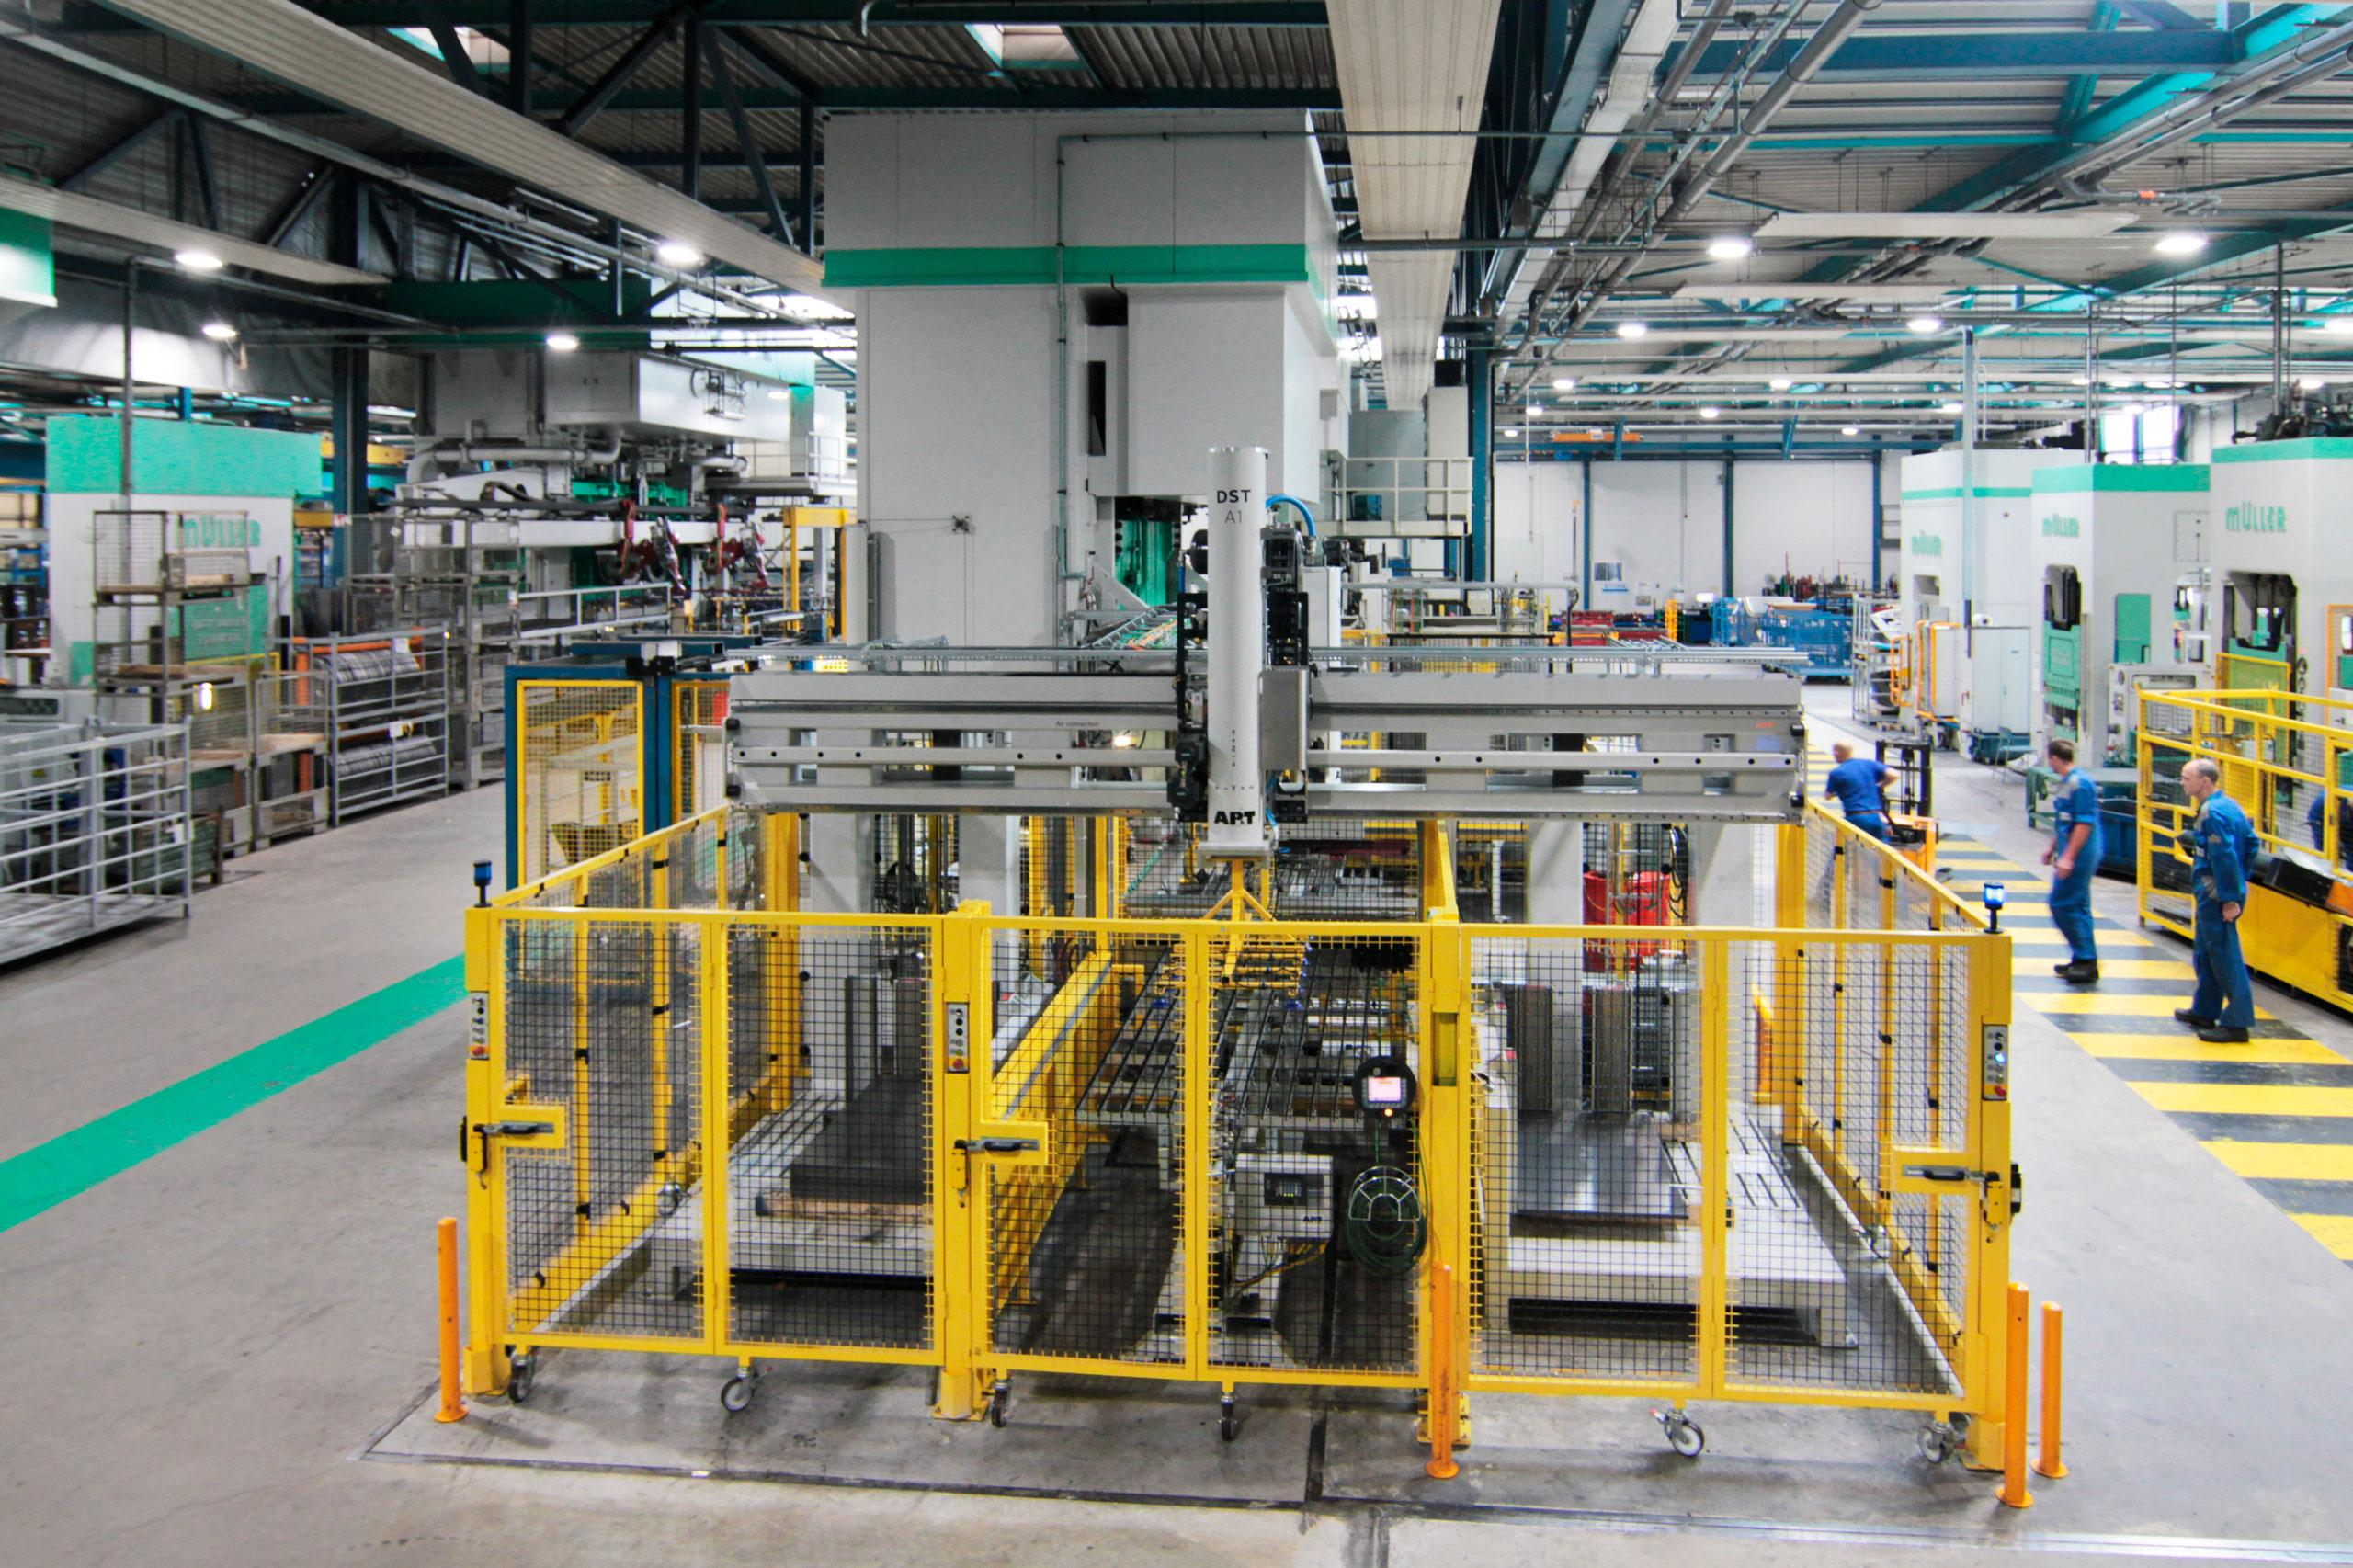 Witte van Moort is the first metal forming company in Europe to install a production solution that incorporates the new generation of automation products from AP&T.